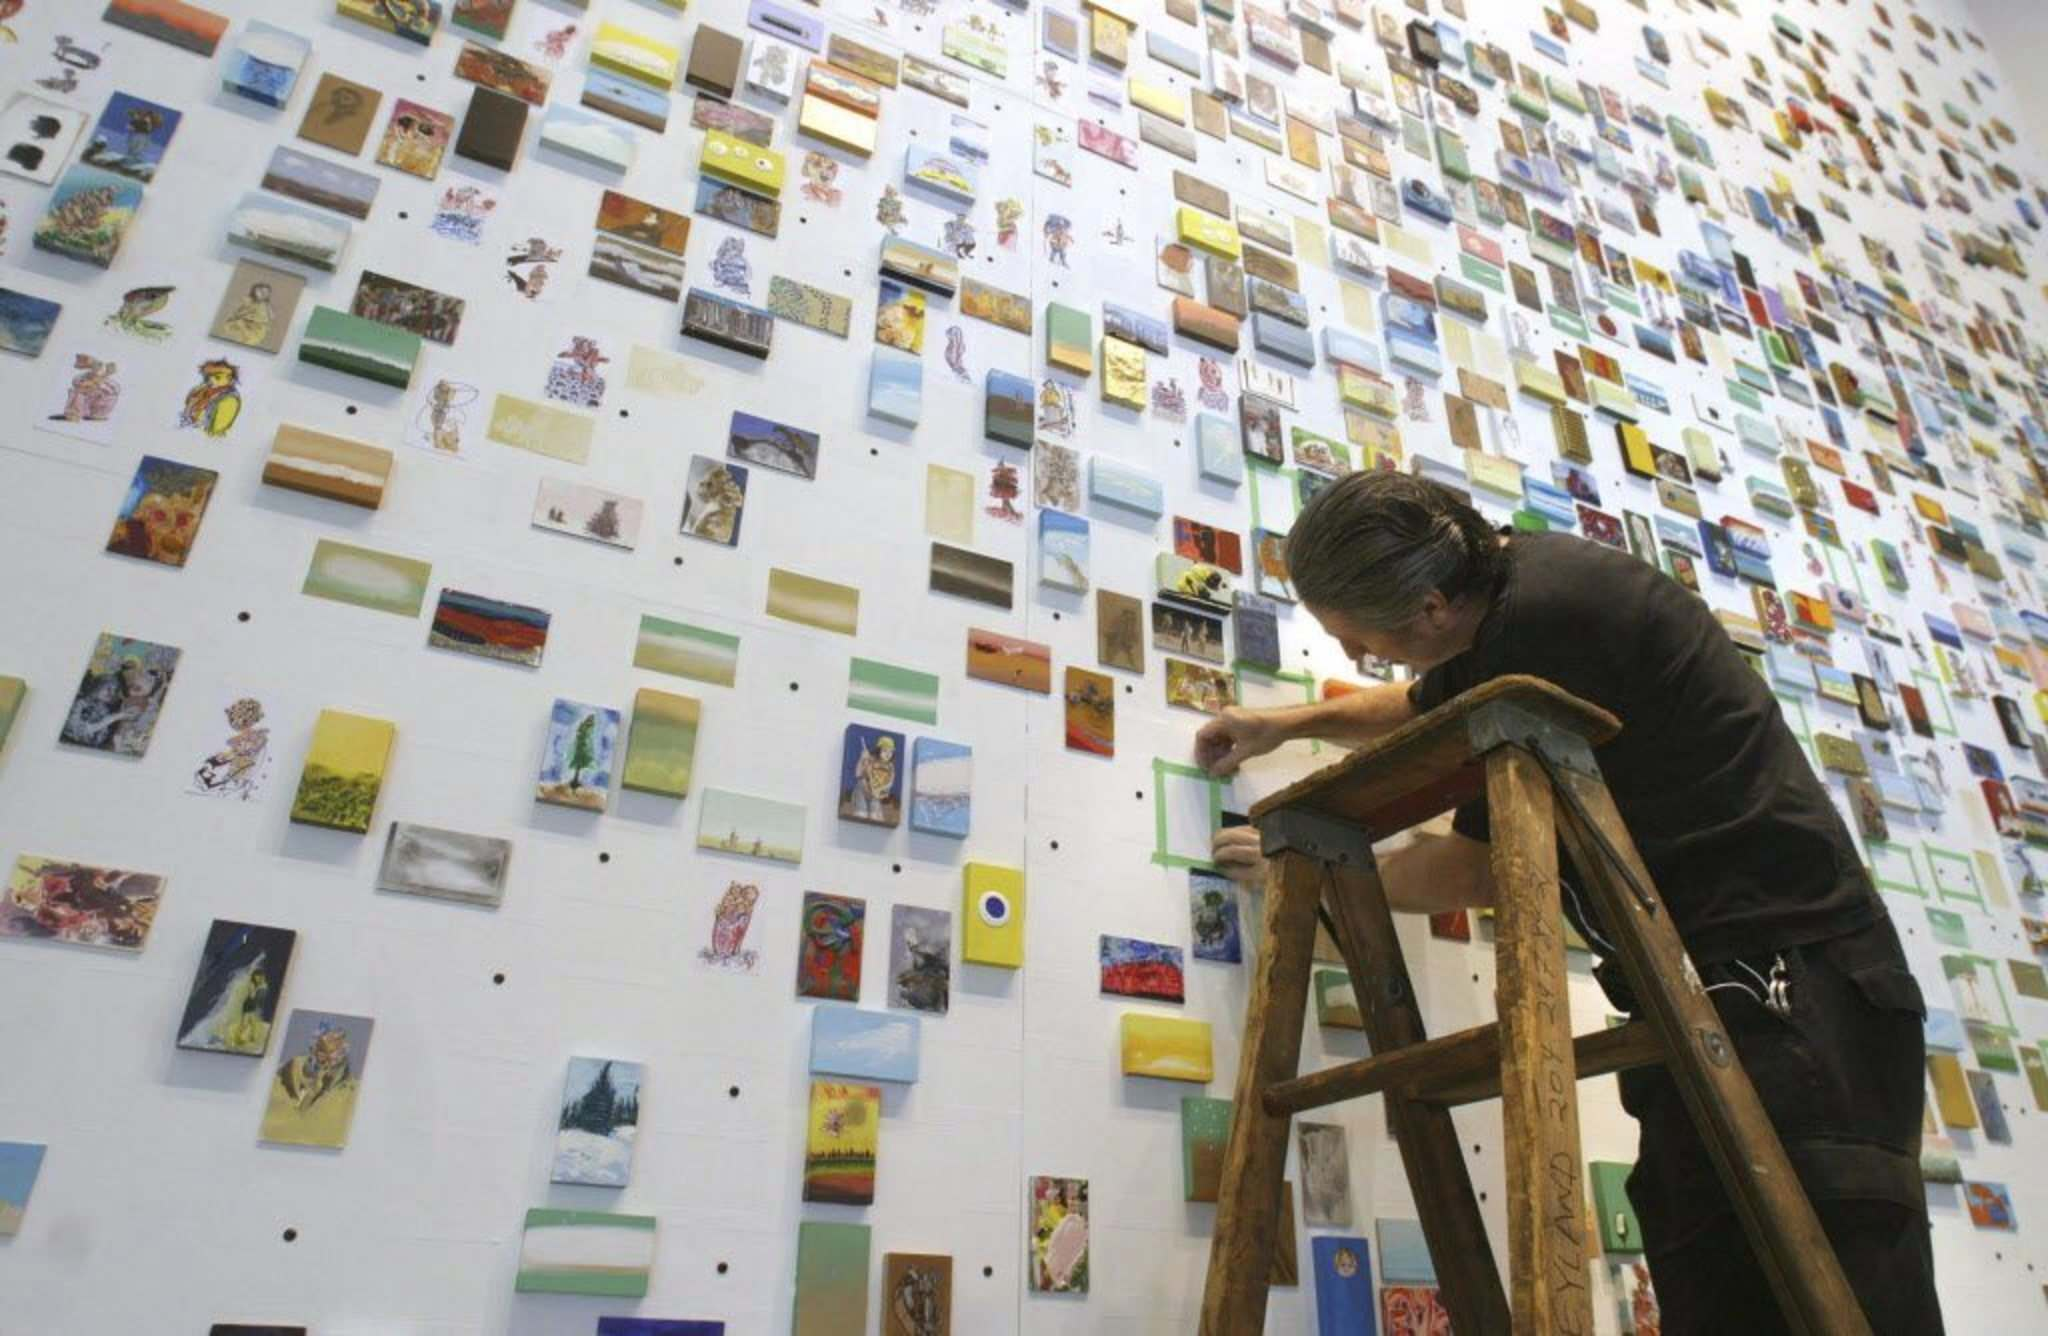 MIKE APORIUS / WINNIPEG FREE PRESS files</p><p>Winnipeg artist and curator Cliff Eyland, setting up his installation at the Millennium Library in 2006: &#8216;Artists will become sneakier hypocrites.&rsquo;</p></p>